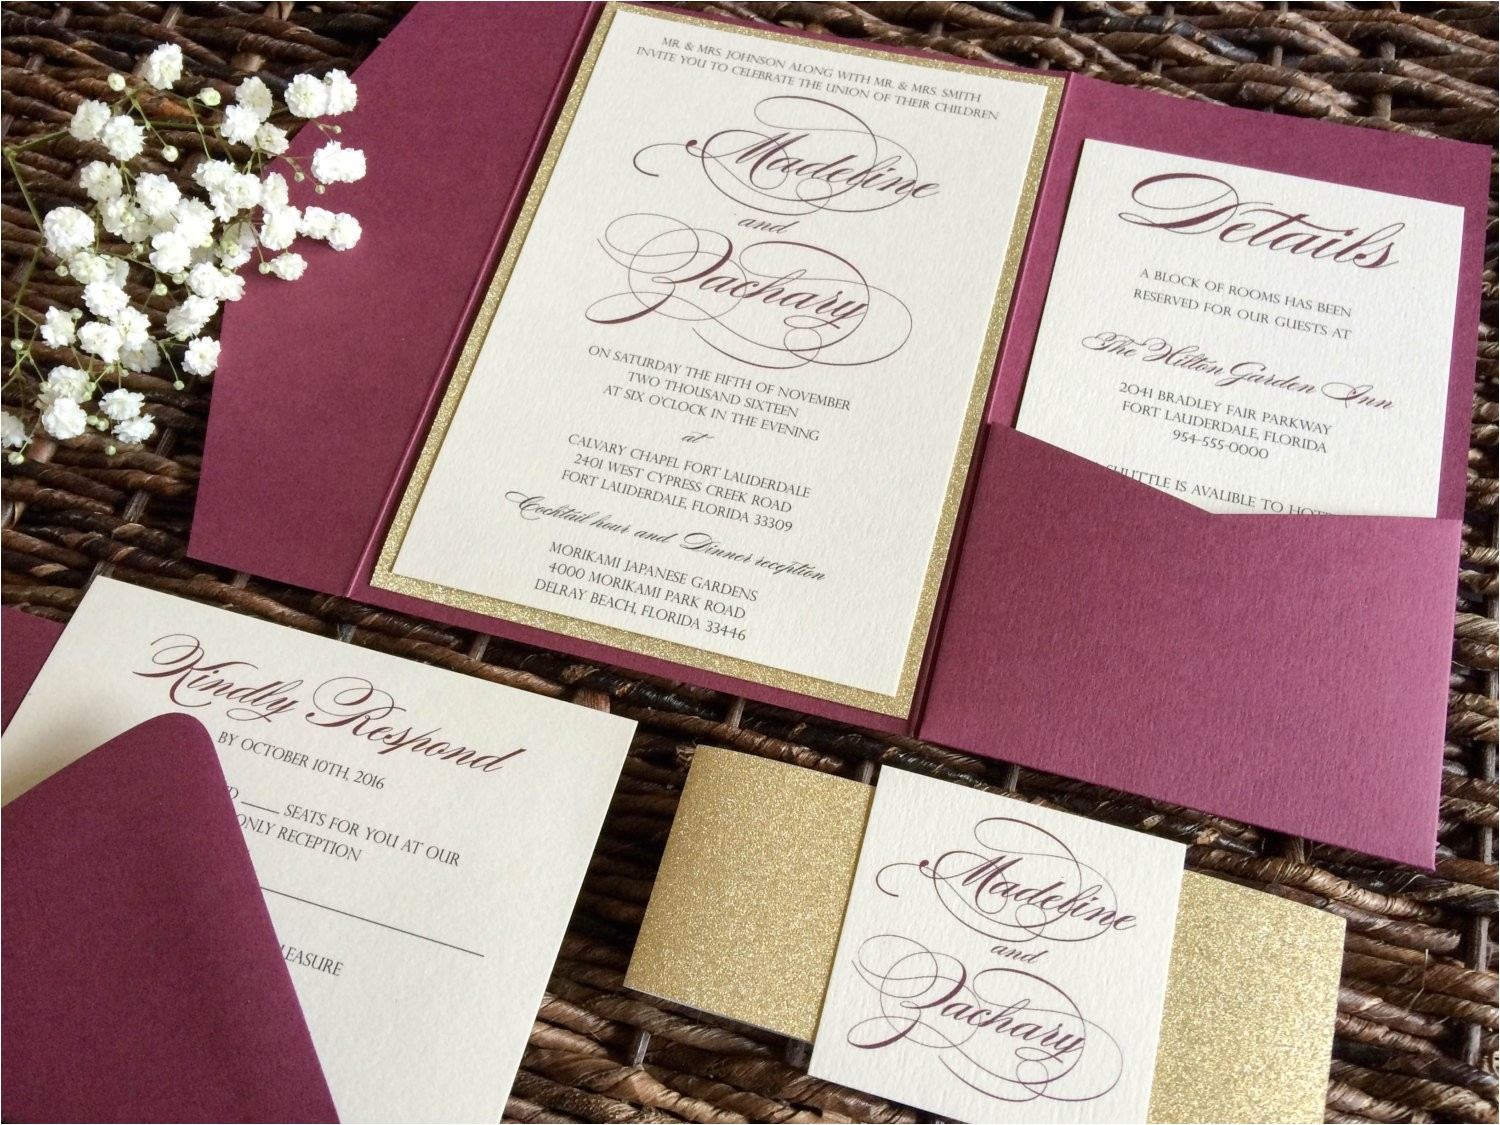 Burgundy themed Wedding Invitations Burgundy Wedding Invitation Burgundy and Gold Glitter Pocket